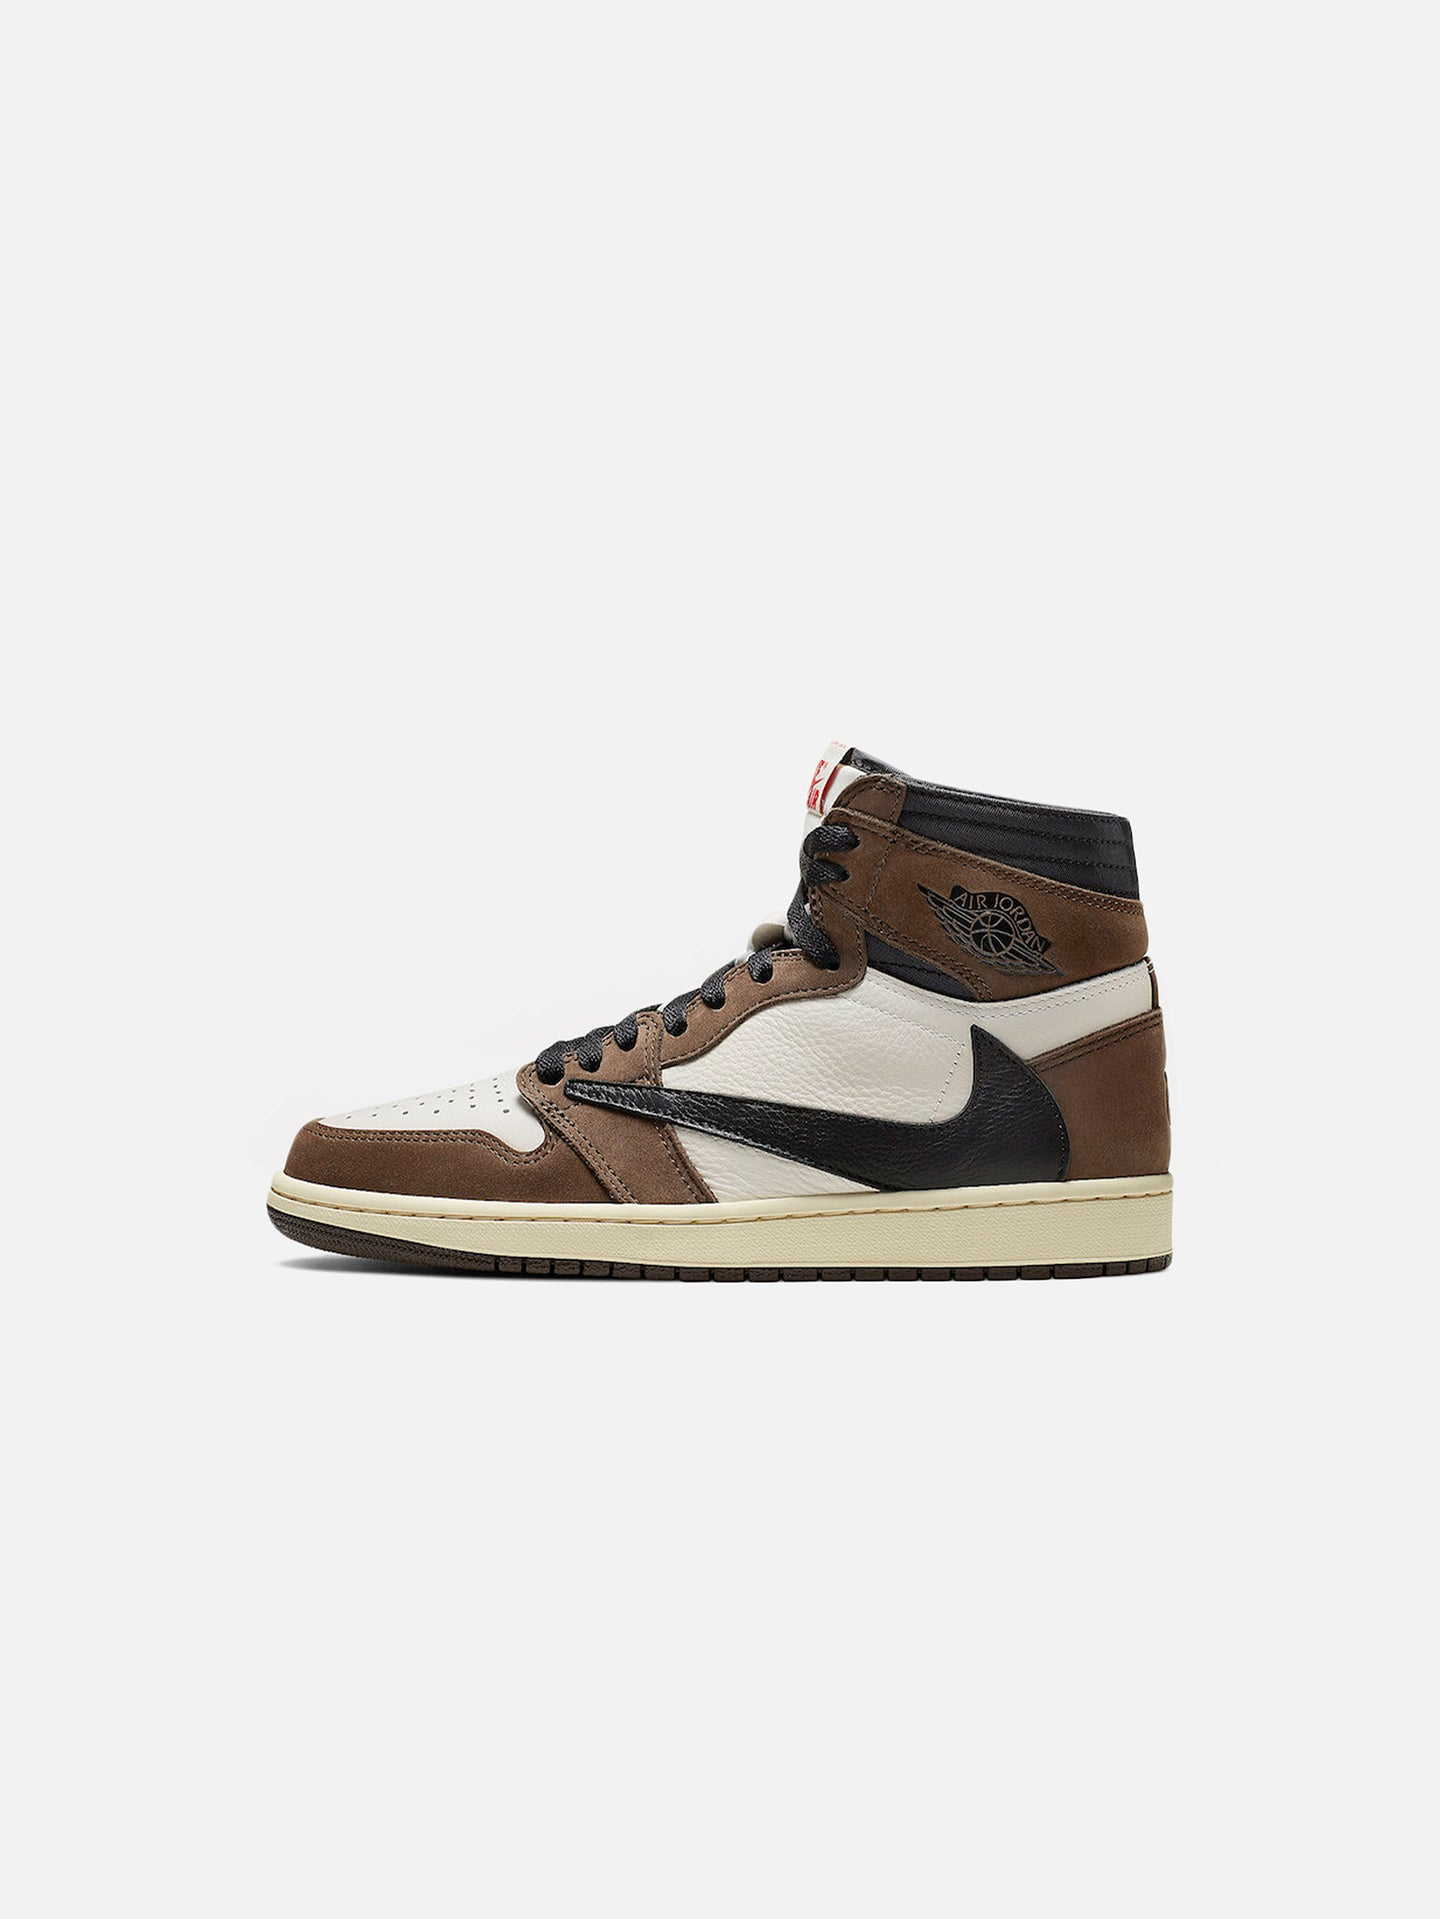 uk availability 5a09b 7b712 x TRAVIS SCOTT AIR JORDAN 1 HIGH OG